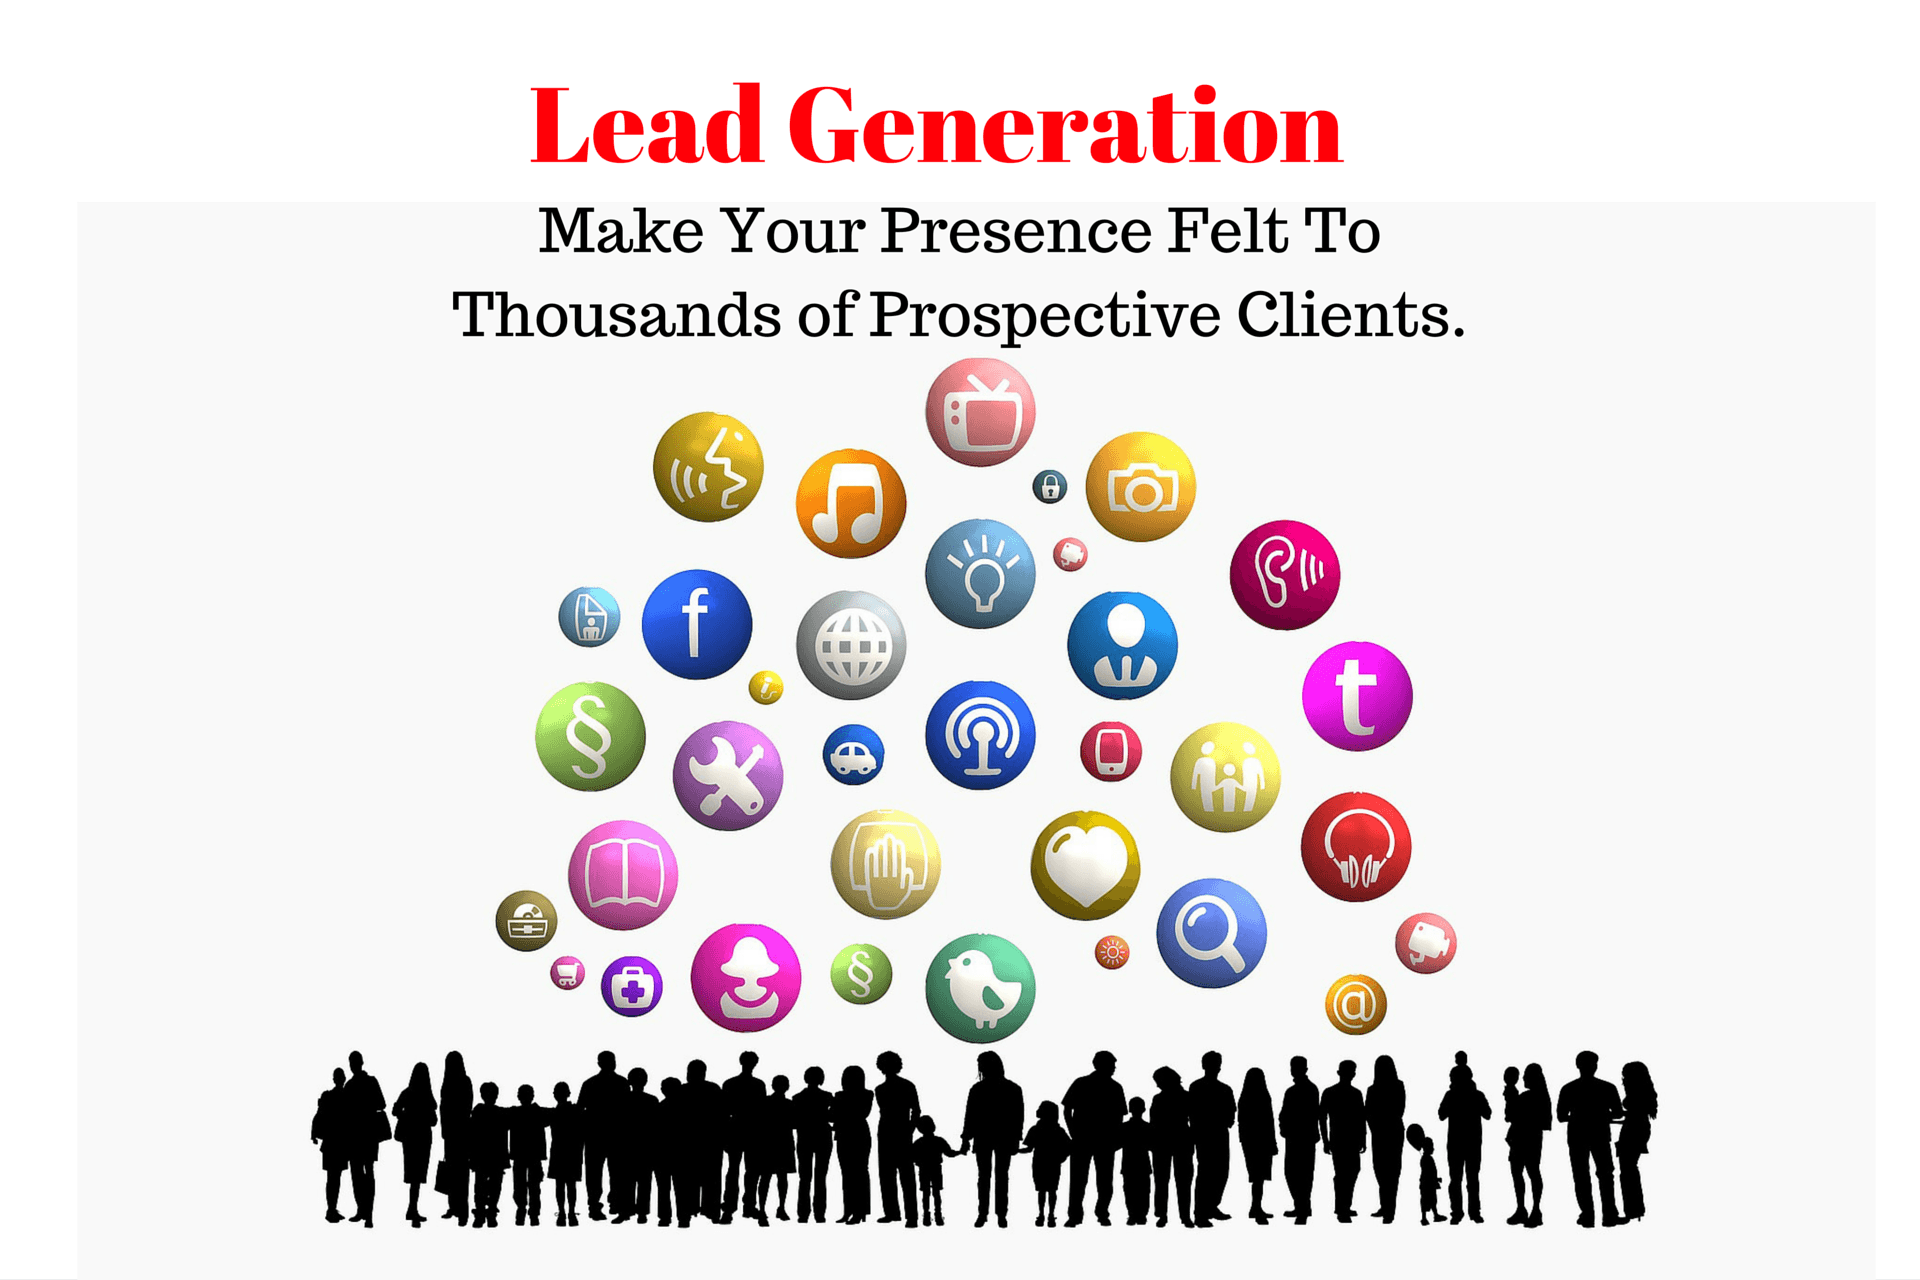 Lead Generation Services - More Business Leads